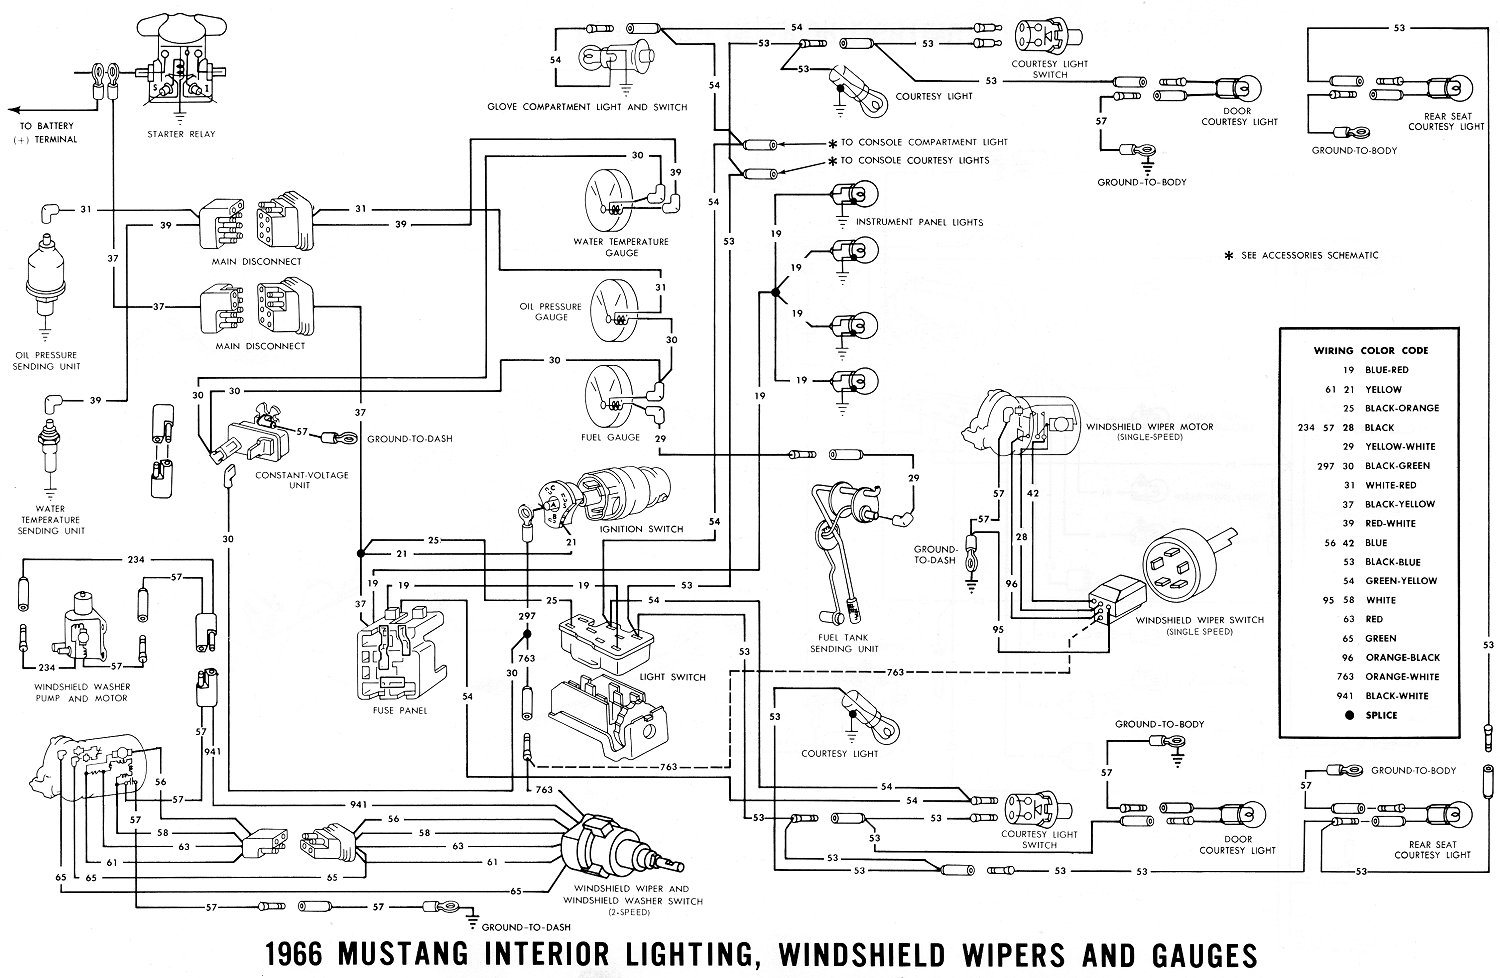 1967 Malibu Instrument Panel Wiring Diagram Free Plc Mustang For You Rh 12 8 4 Carrera Rennwelt